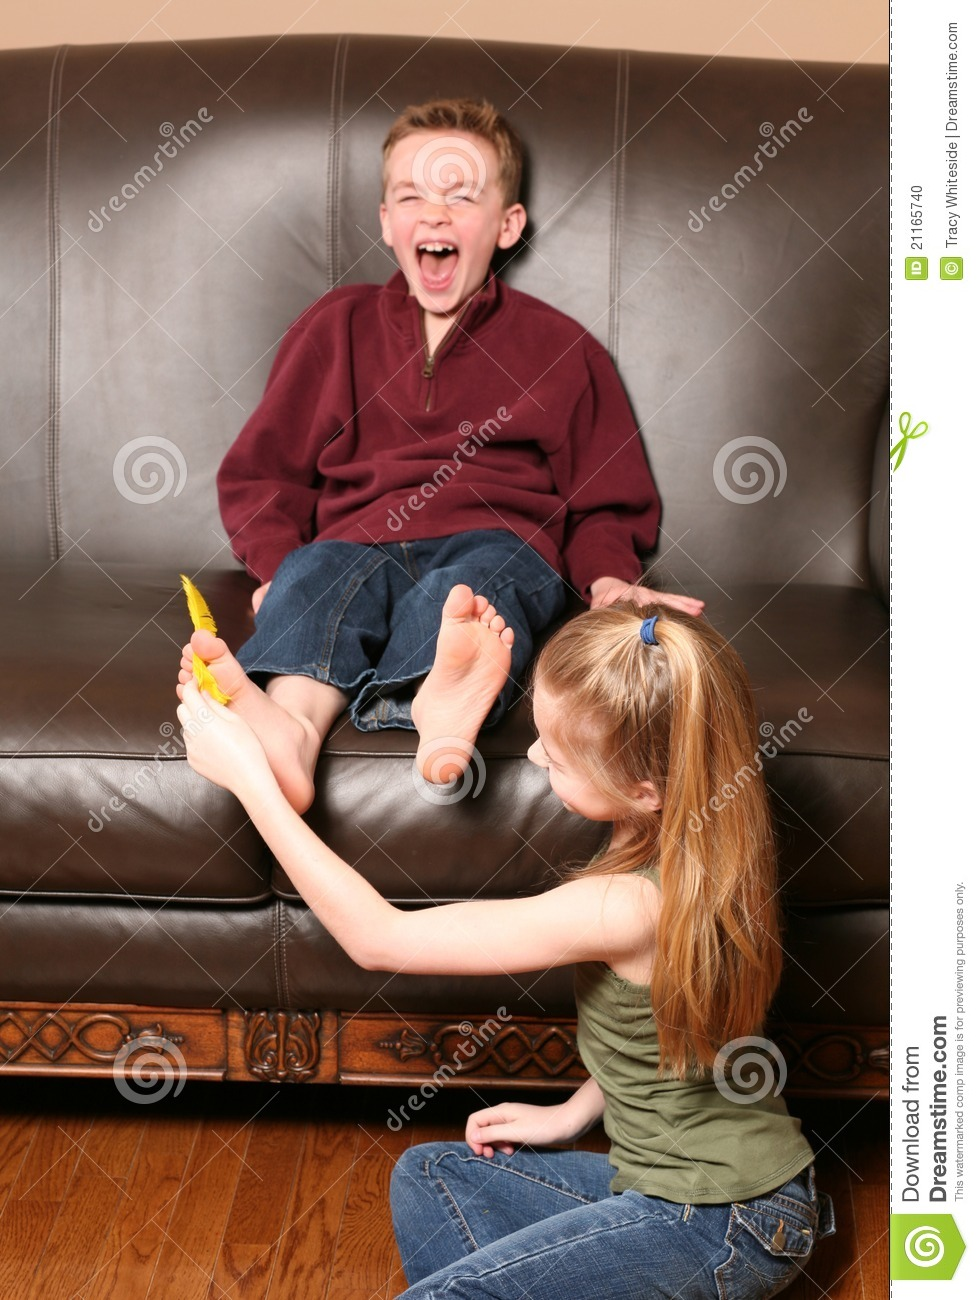 More similar stock images of ` Children tickling feet with feather `